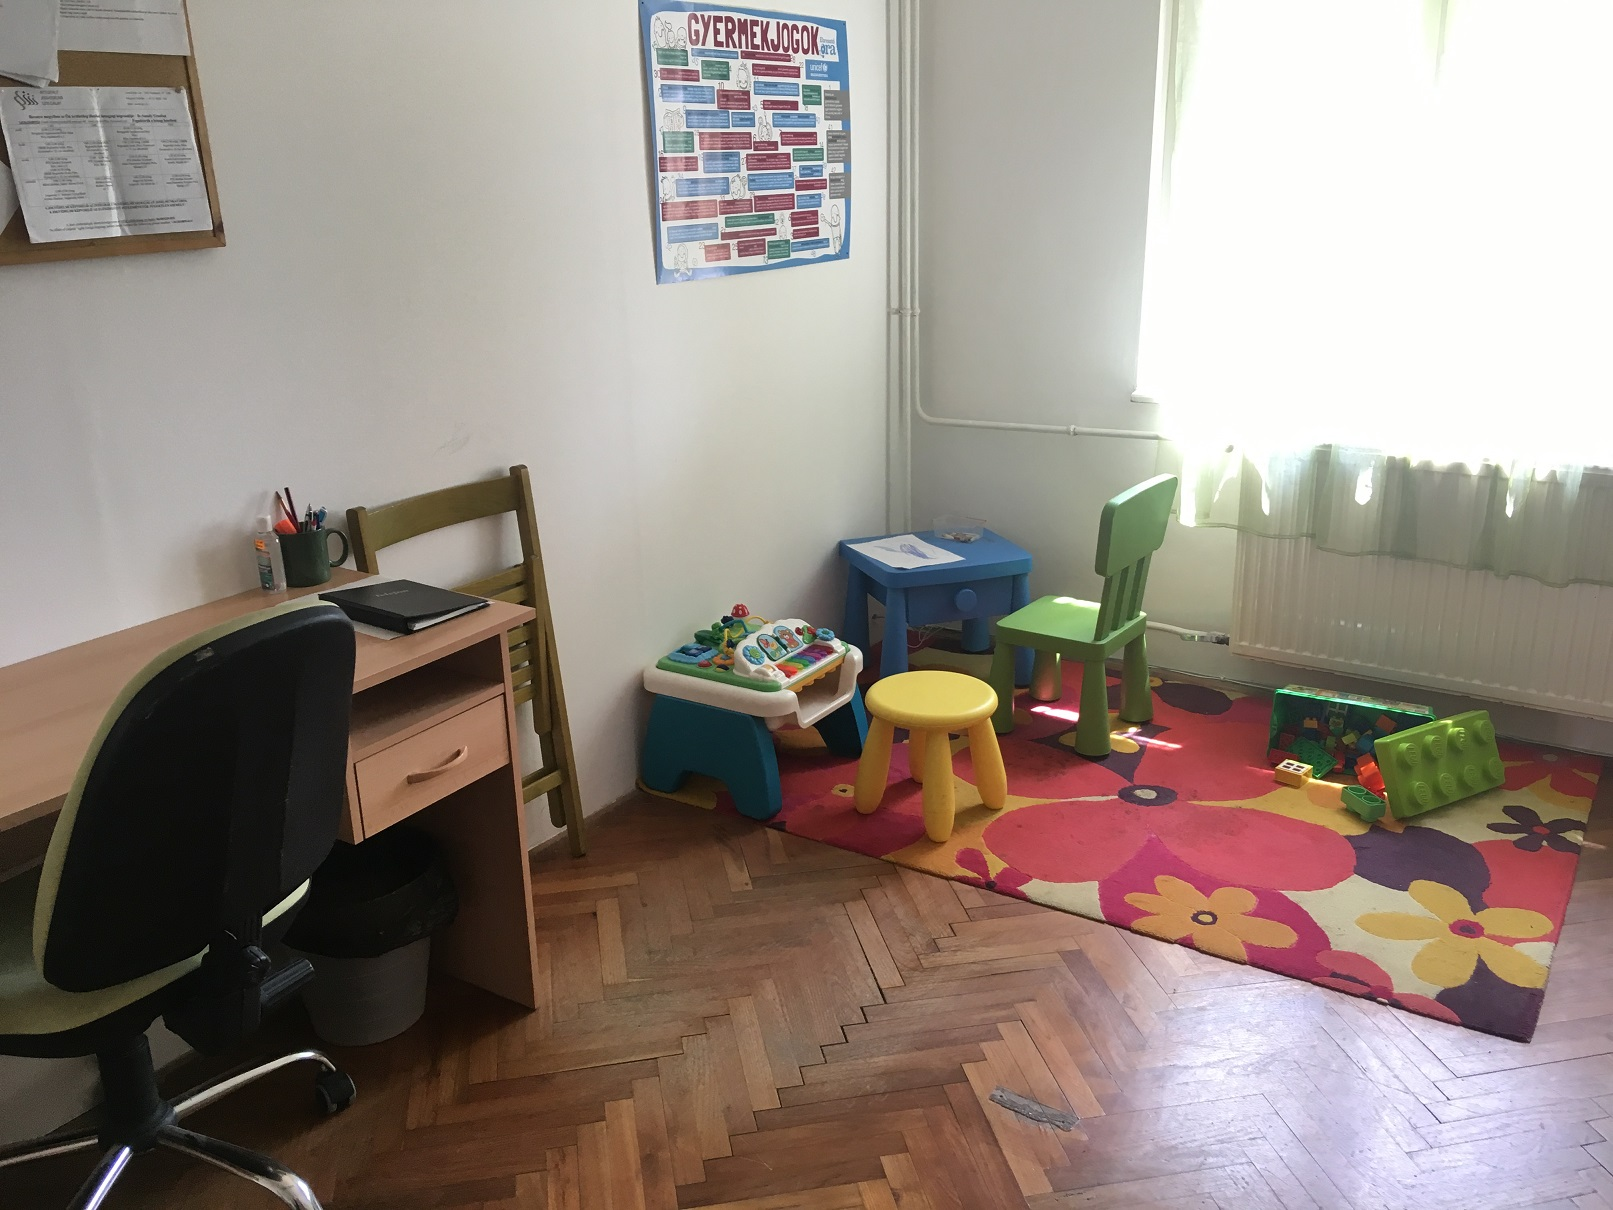 Kids corner at the low-threshold centre, NGO INDIT Foundation, Pécs, Hungary